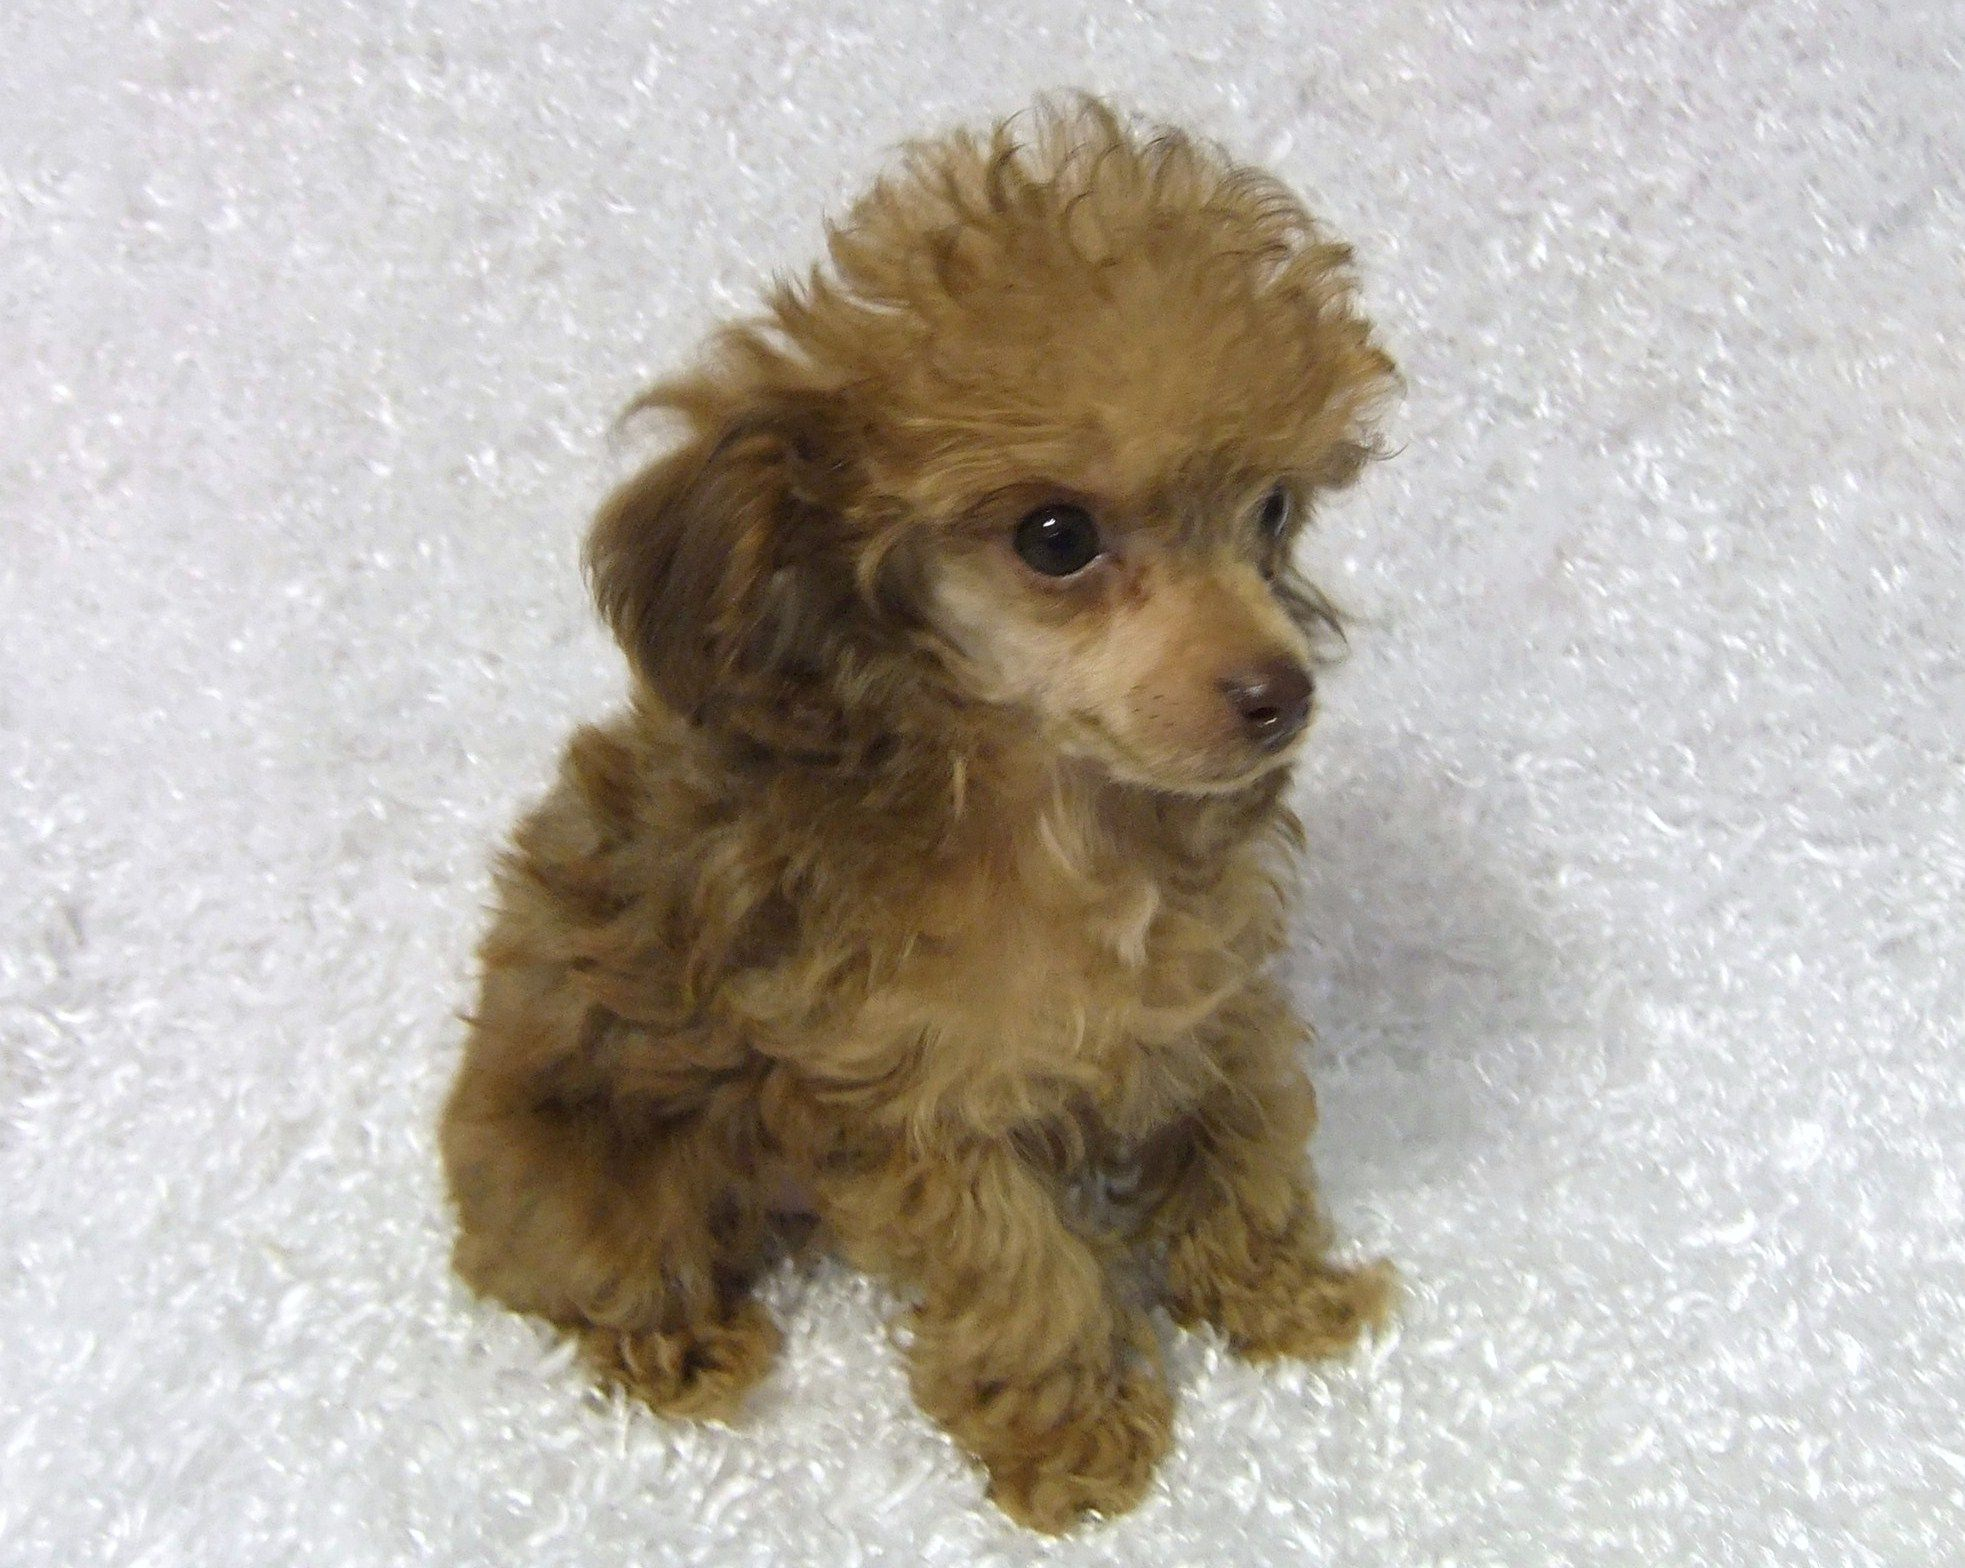 Teacup Poodles Teacup Poodle Puppies Toy Poodle Puppies From